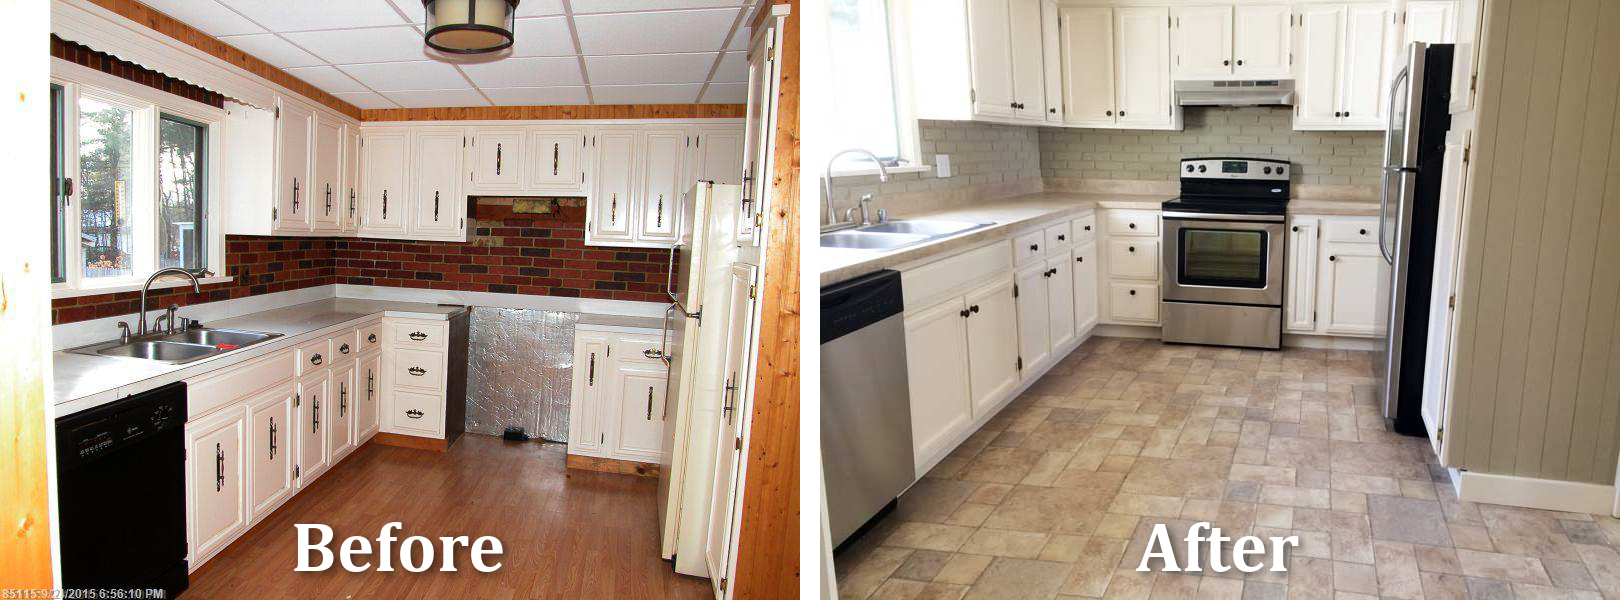 Remodel Galley Kitchen Before After galley kitchen remodel back entry before and after kenwood